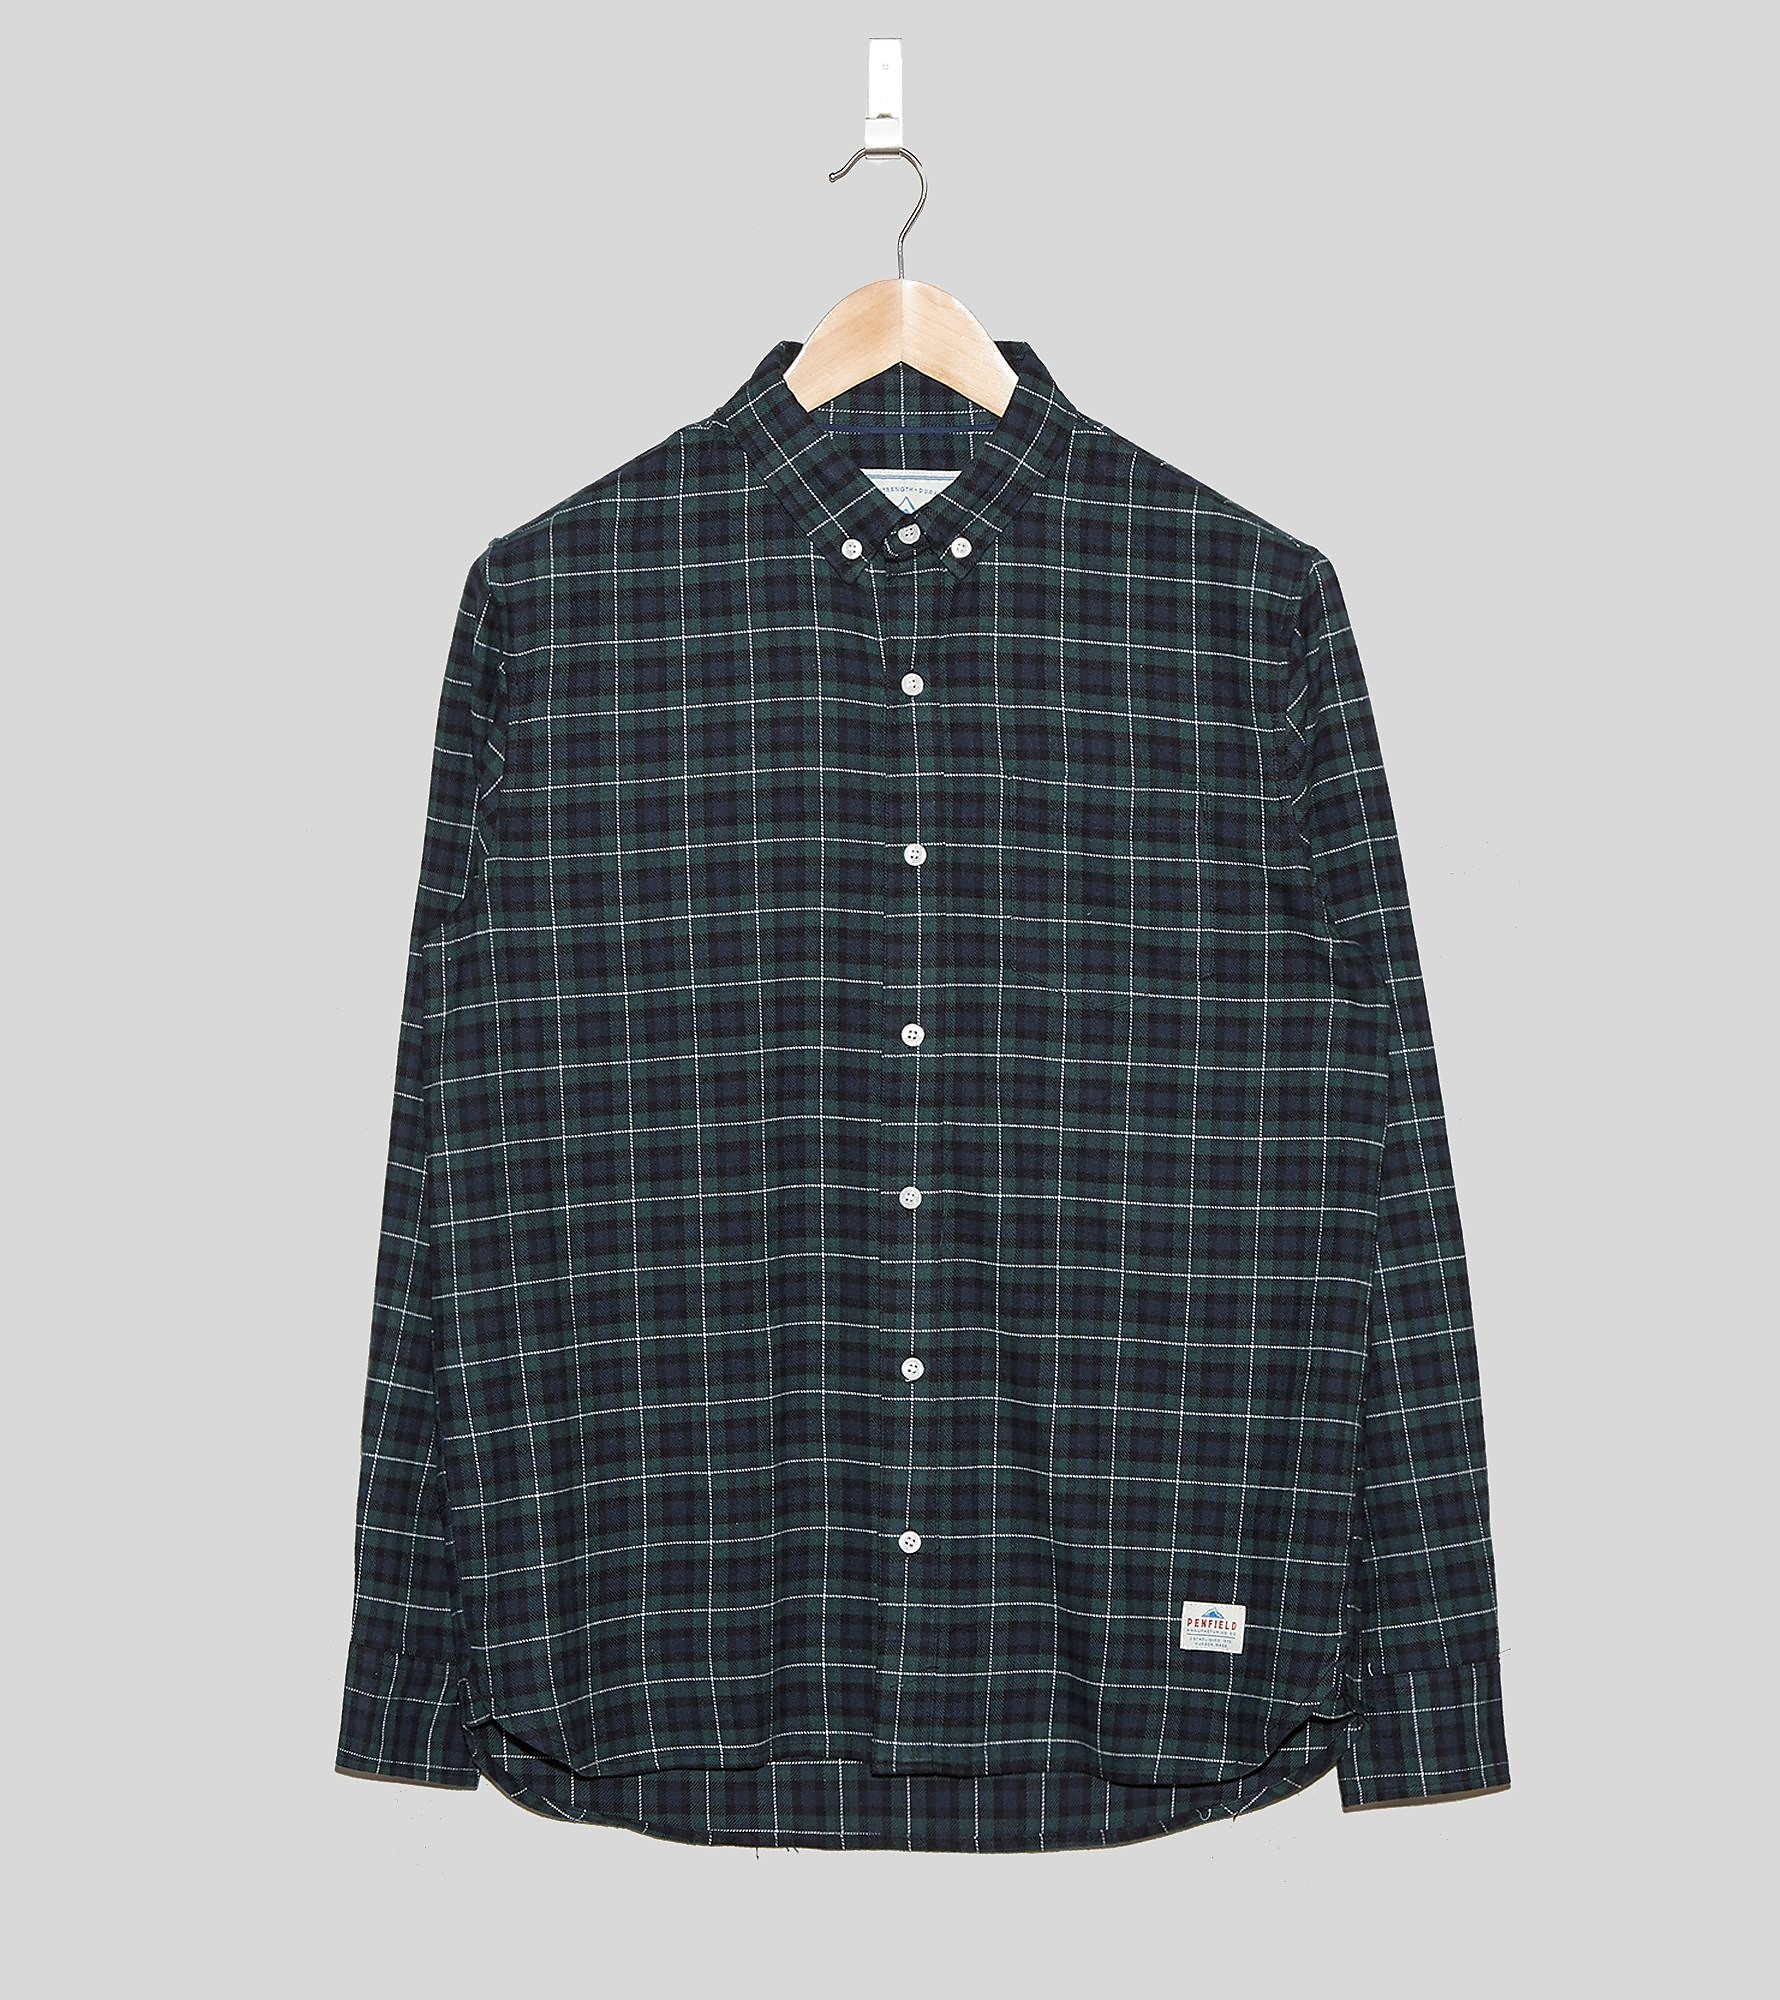 Penfield Hanover Checked Shirt